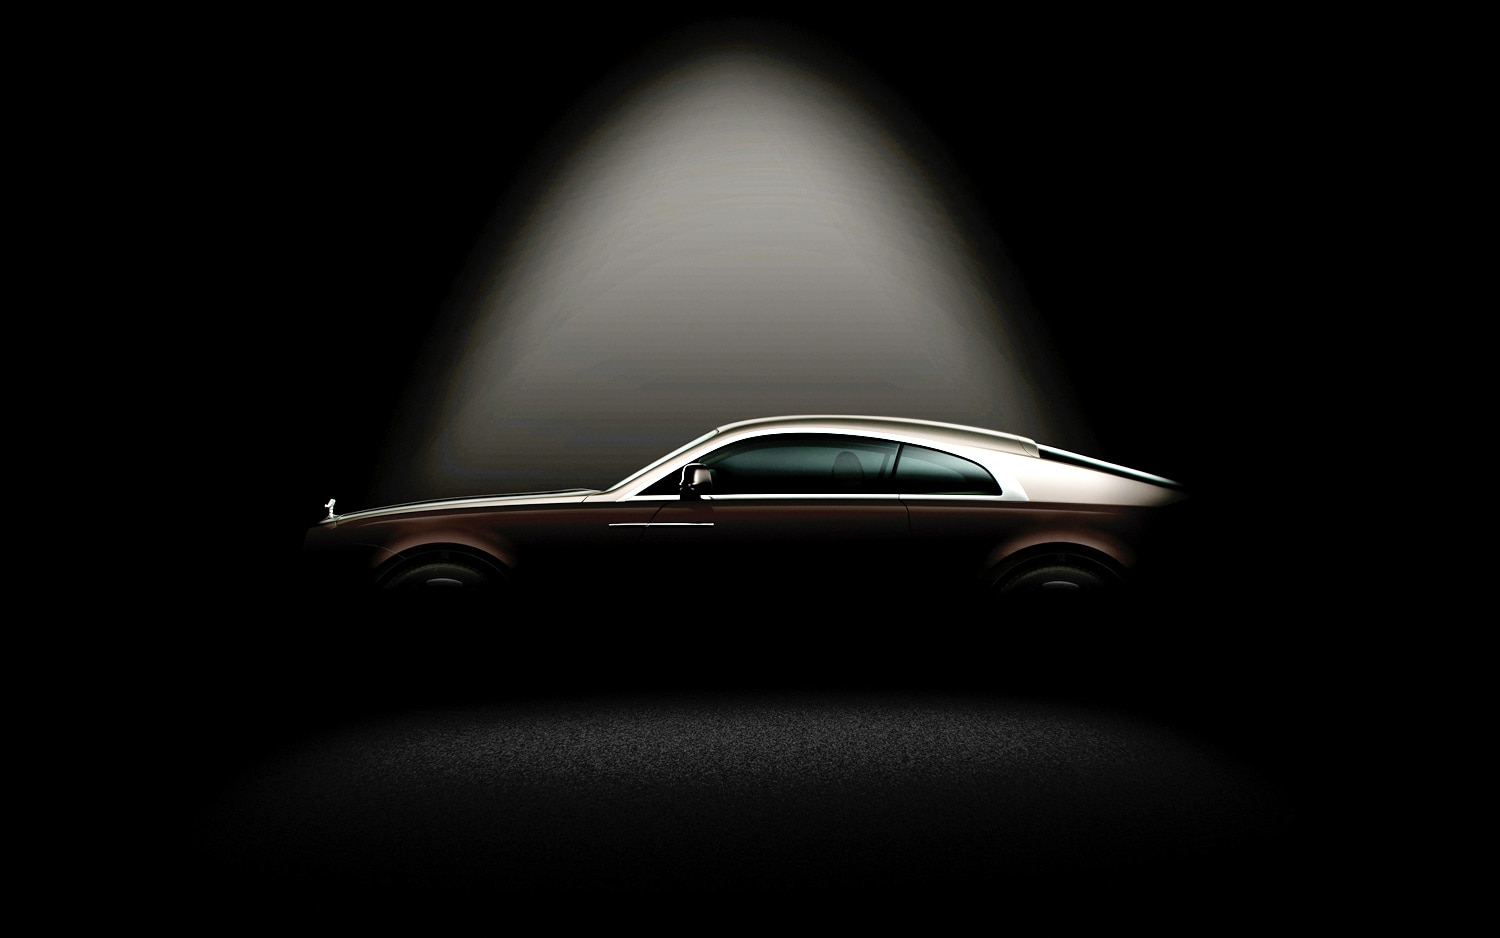 2014 Rolls Royce Wraith Profile Teaser Lightened1